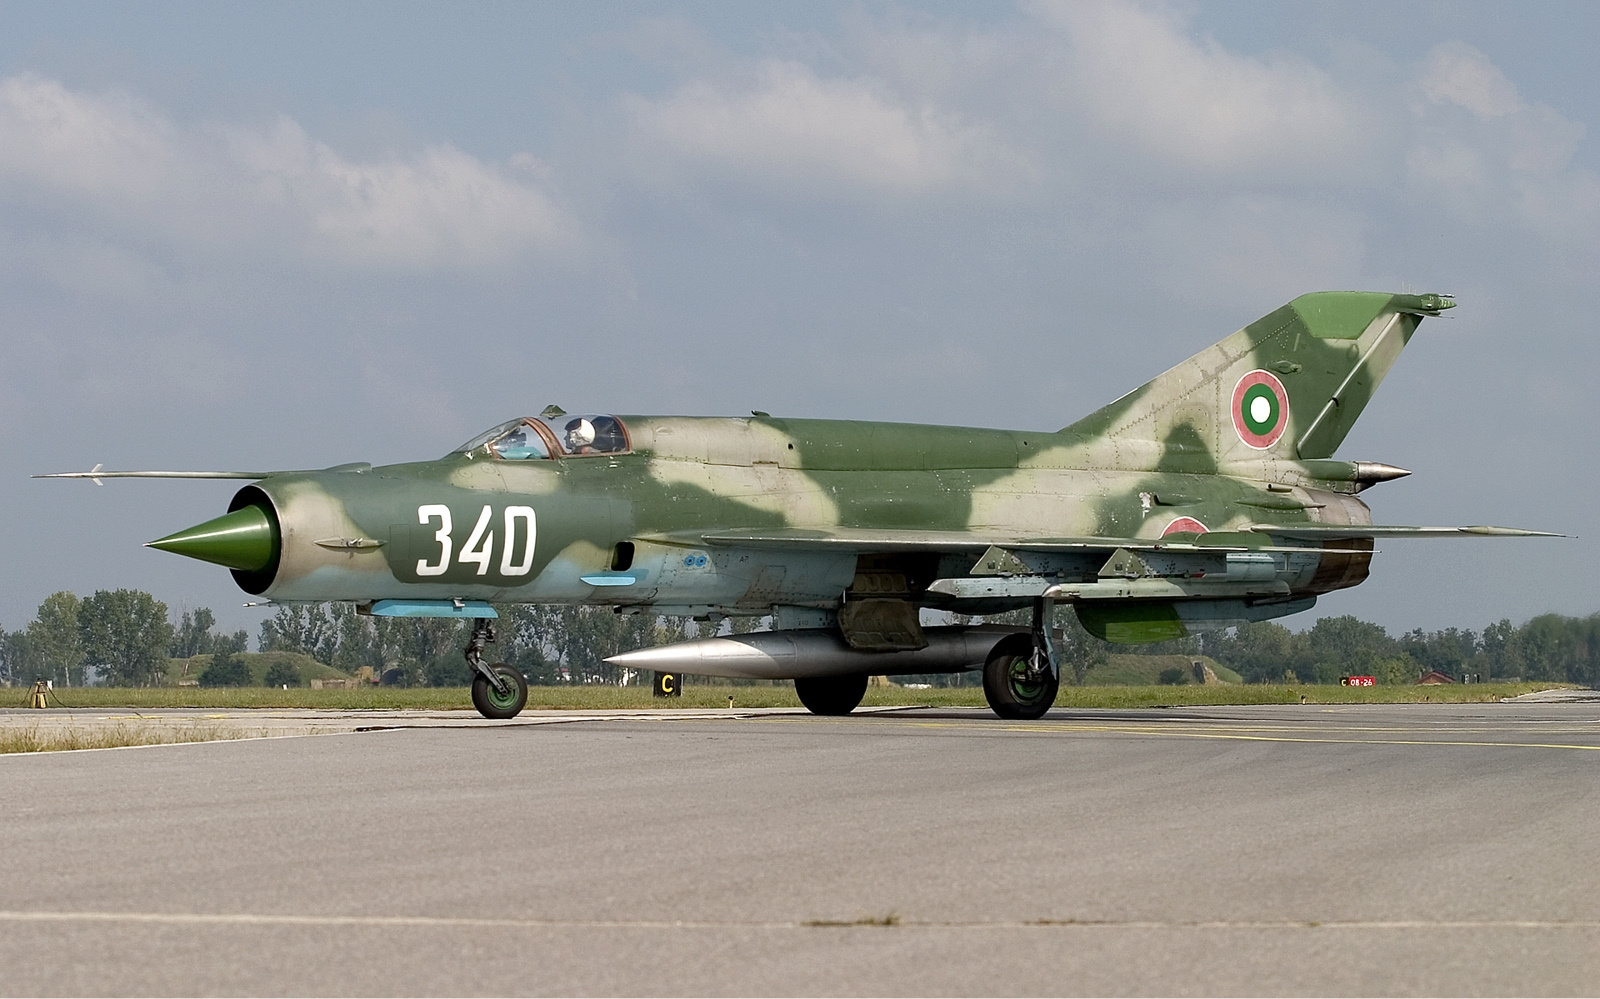 Skin request for MiG-21Bis - ED Forums